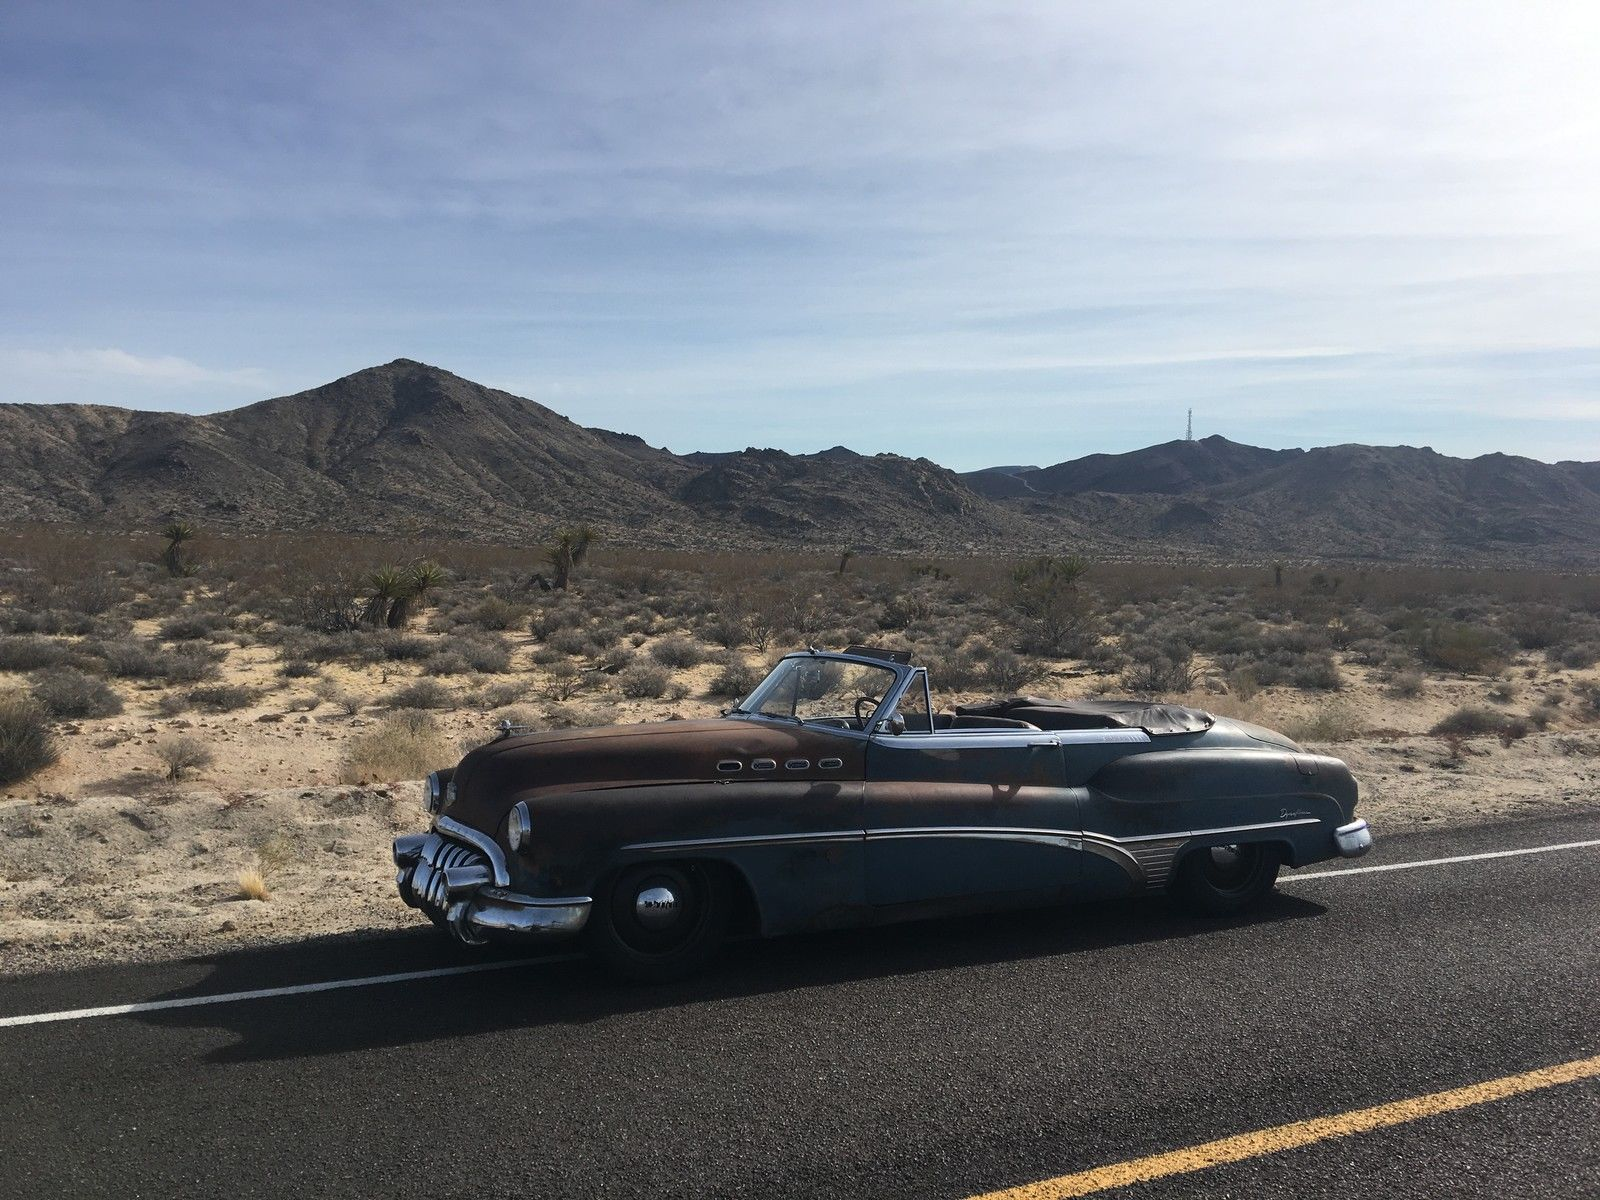 1950 Buick Roadmaster ICON Derelict 3/4 desert mountains